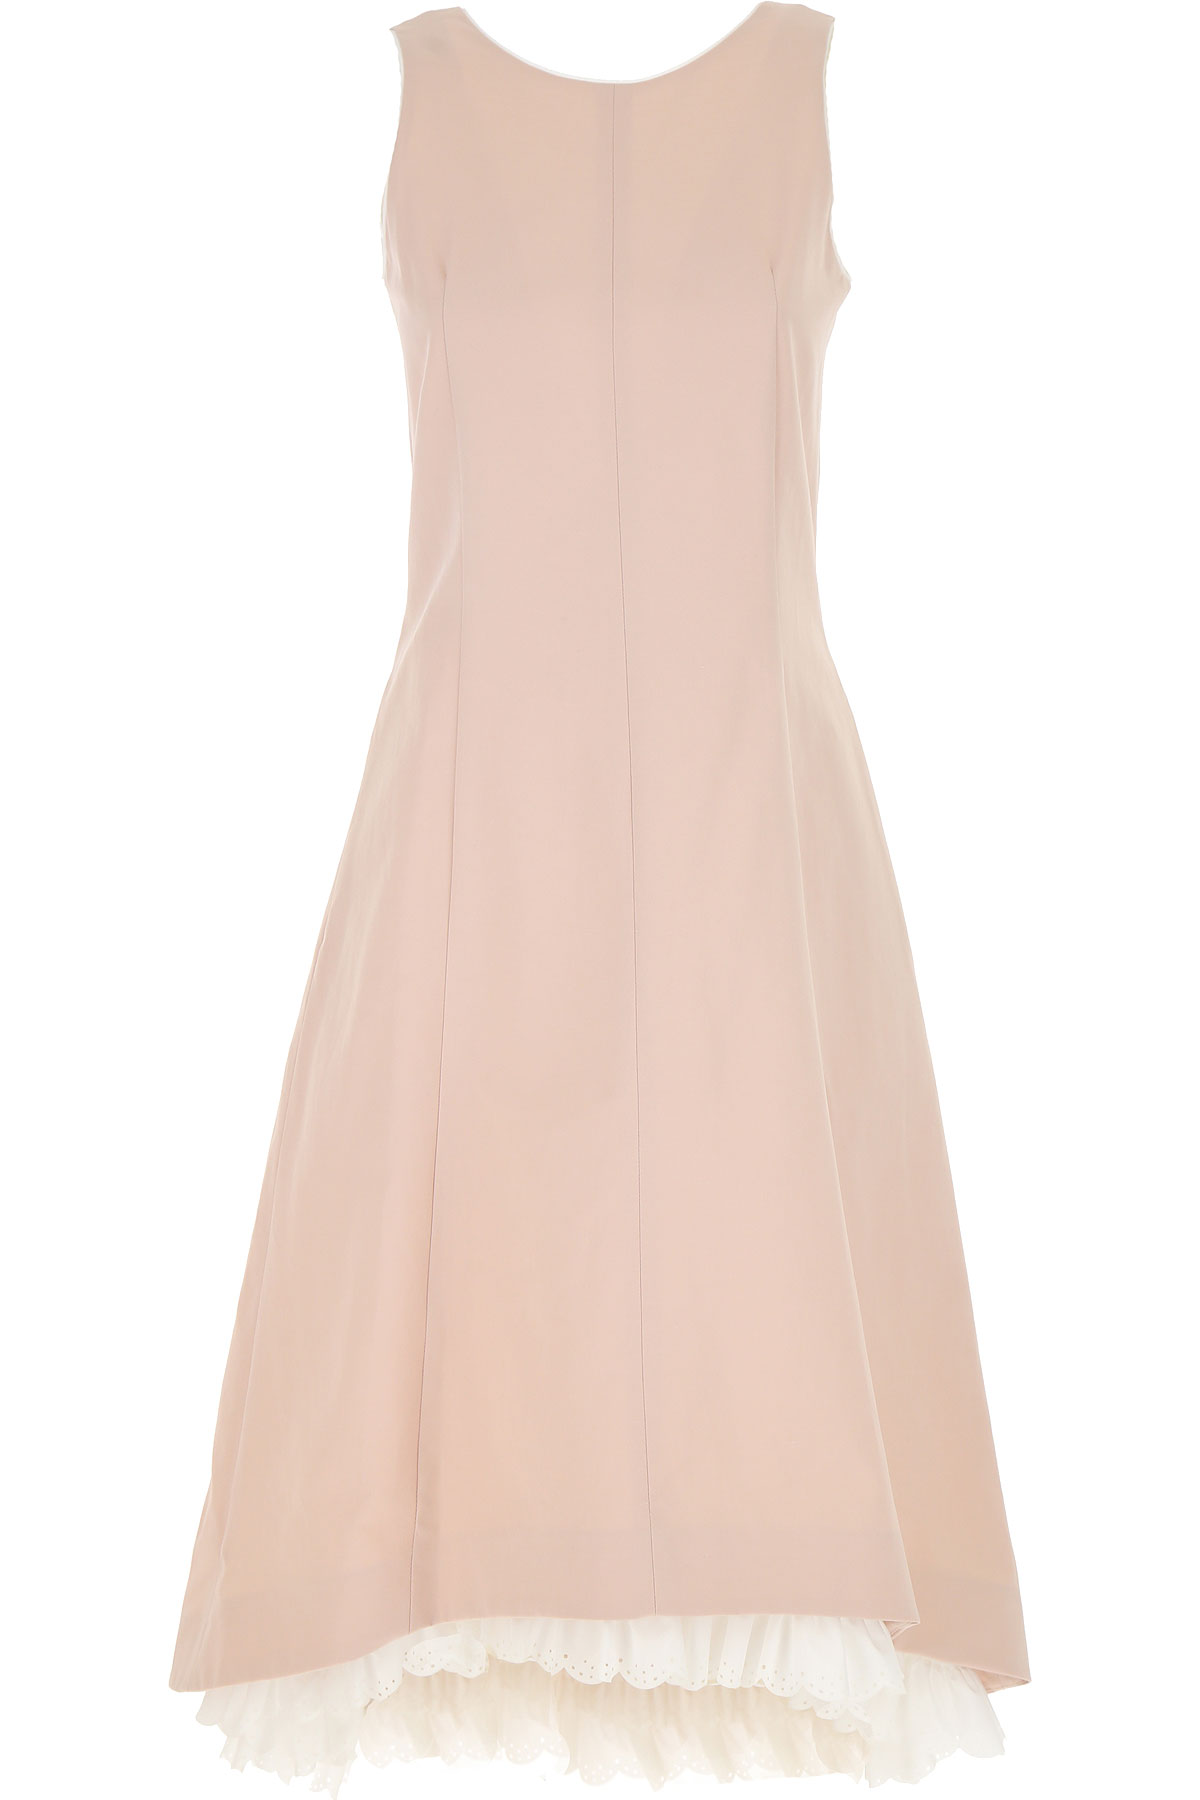 Max Mara Dress for Women, Evening Cocktail Party On Sale, Powder Pink, Cotton, 2019, 2 4